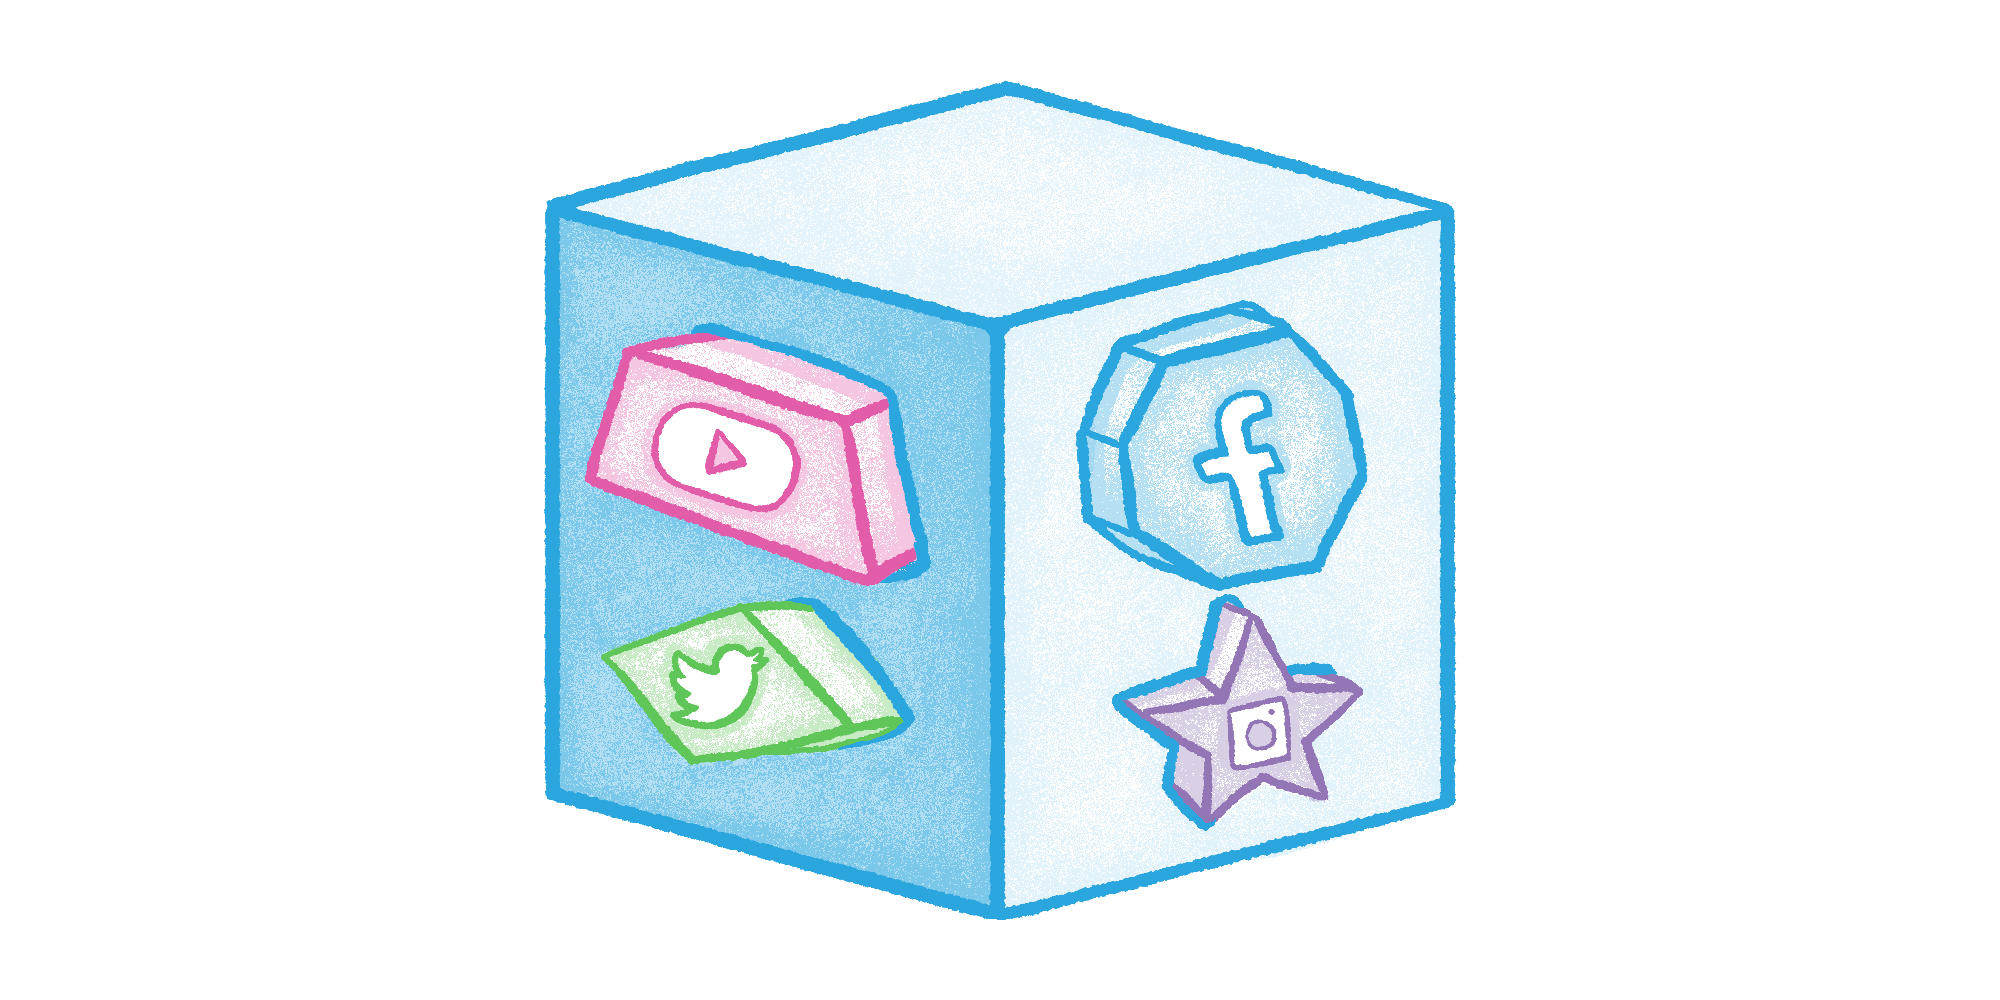 a shape-sorting-cube with social media icons